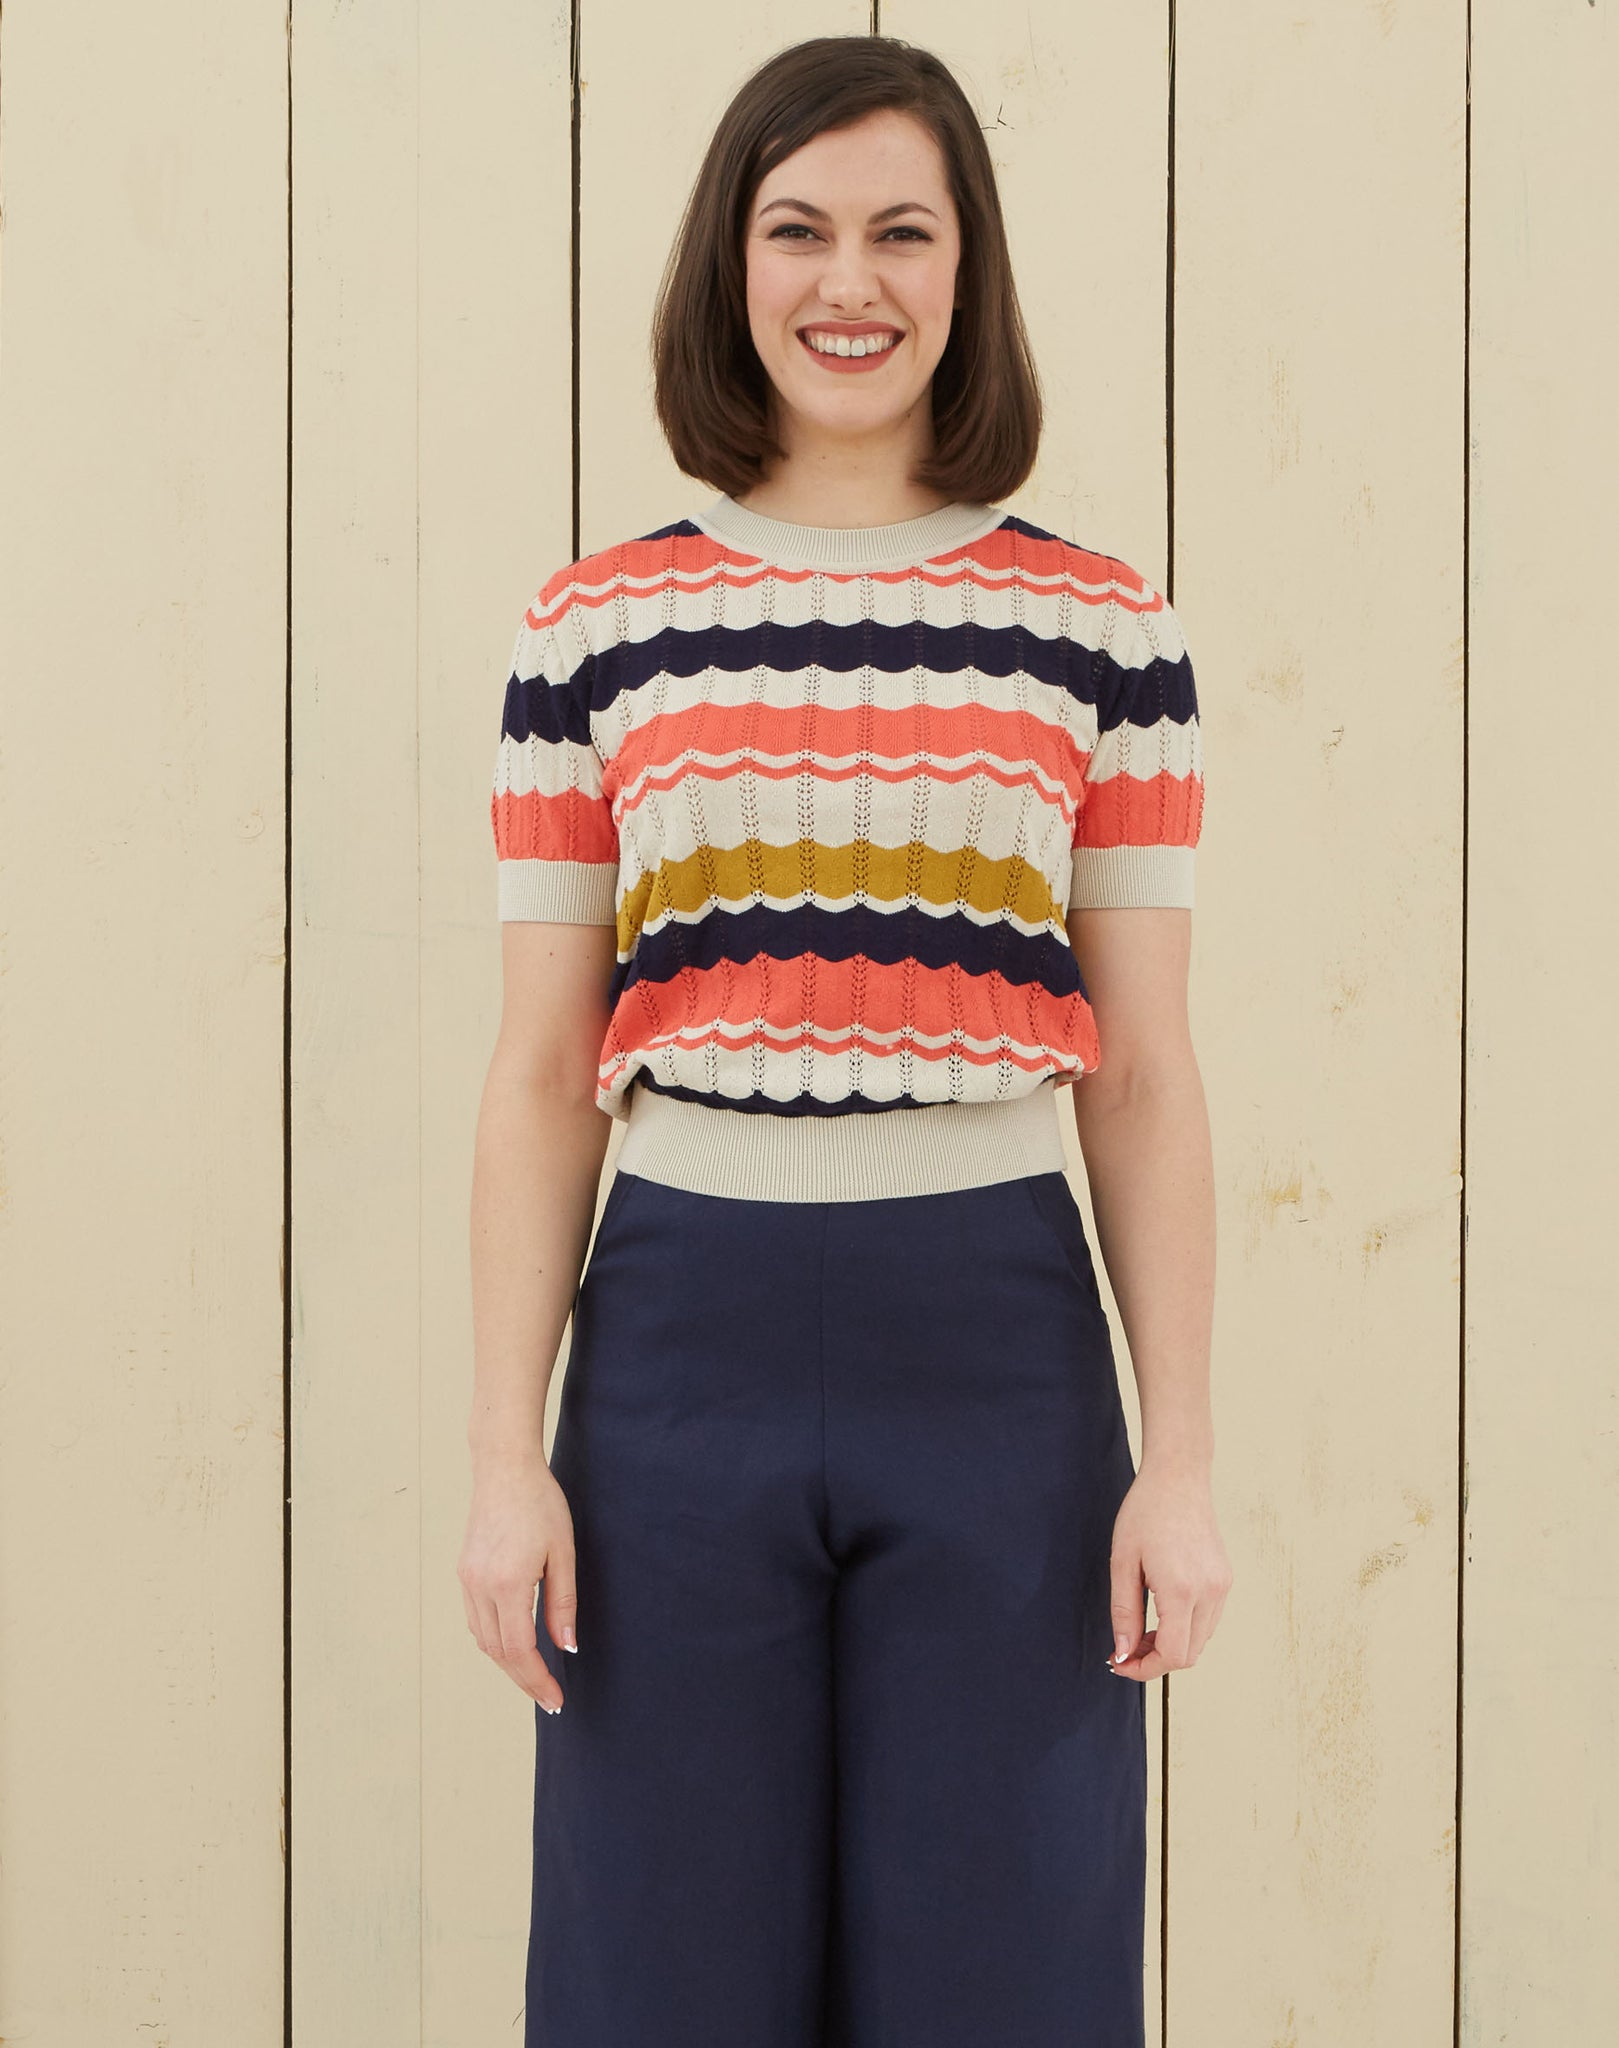 Durrells inspired knitwear Top | Navy, Coral, Mustard, Organic Cotton